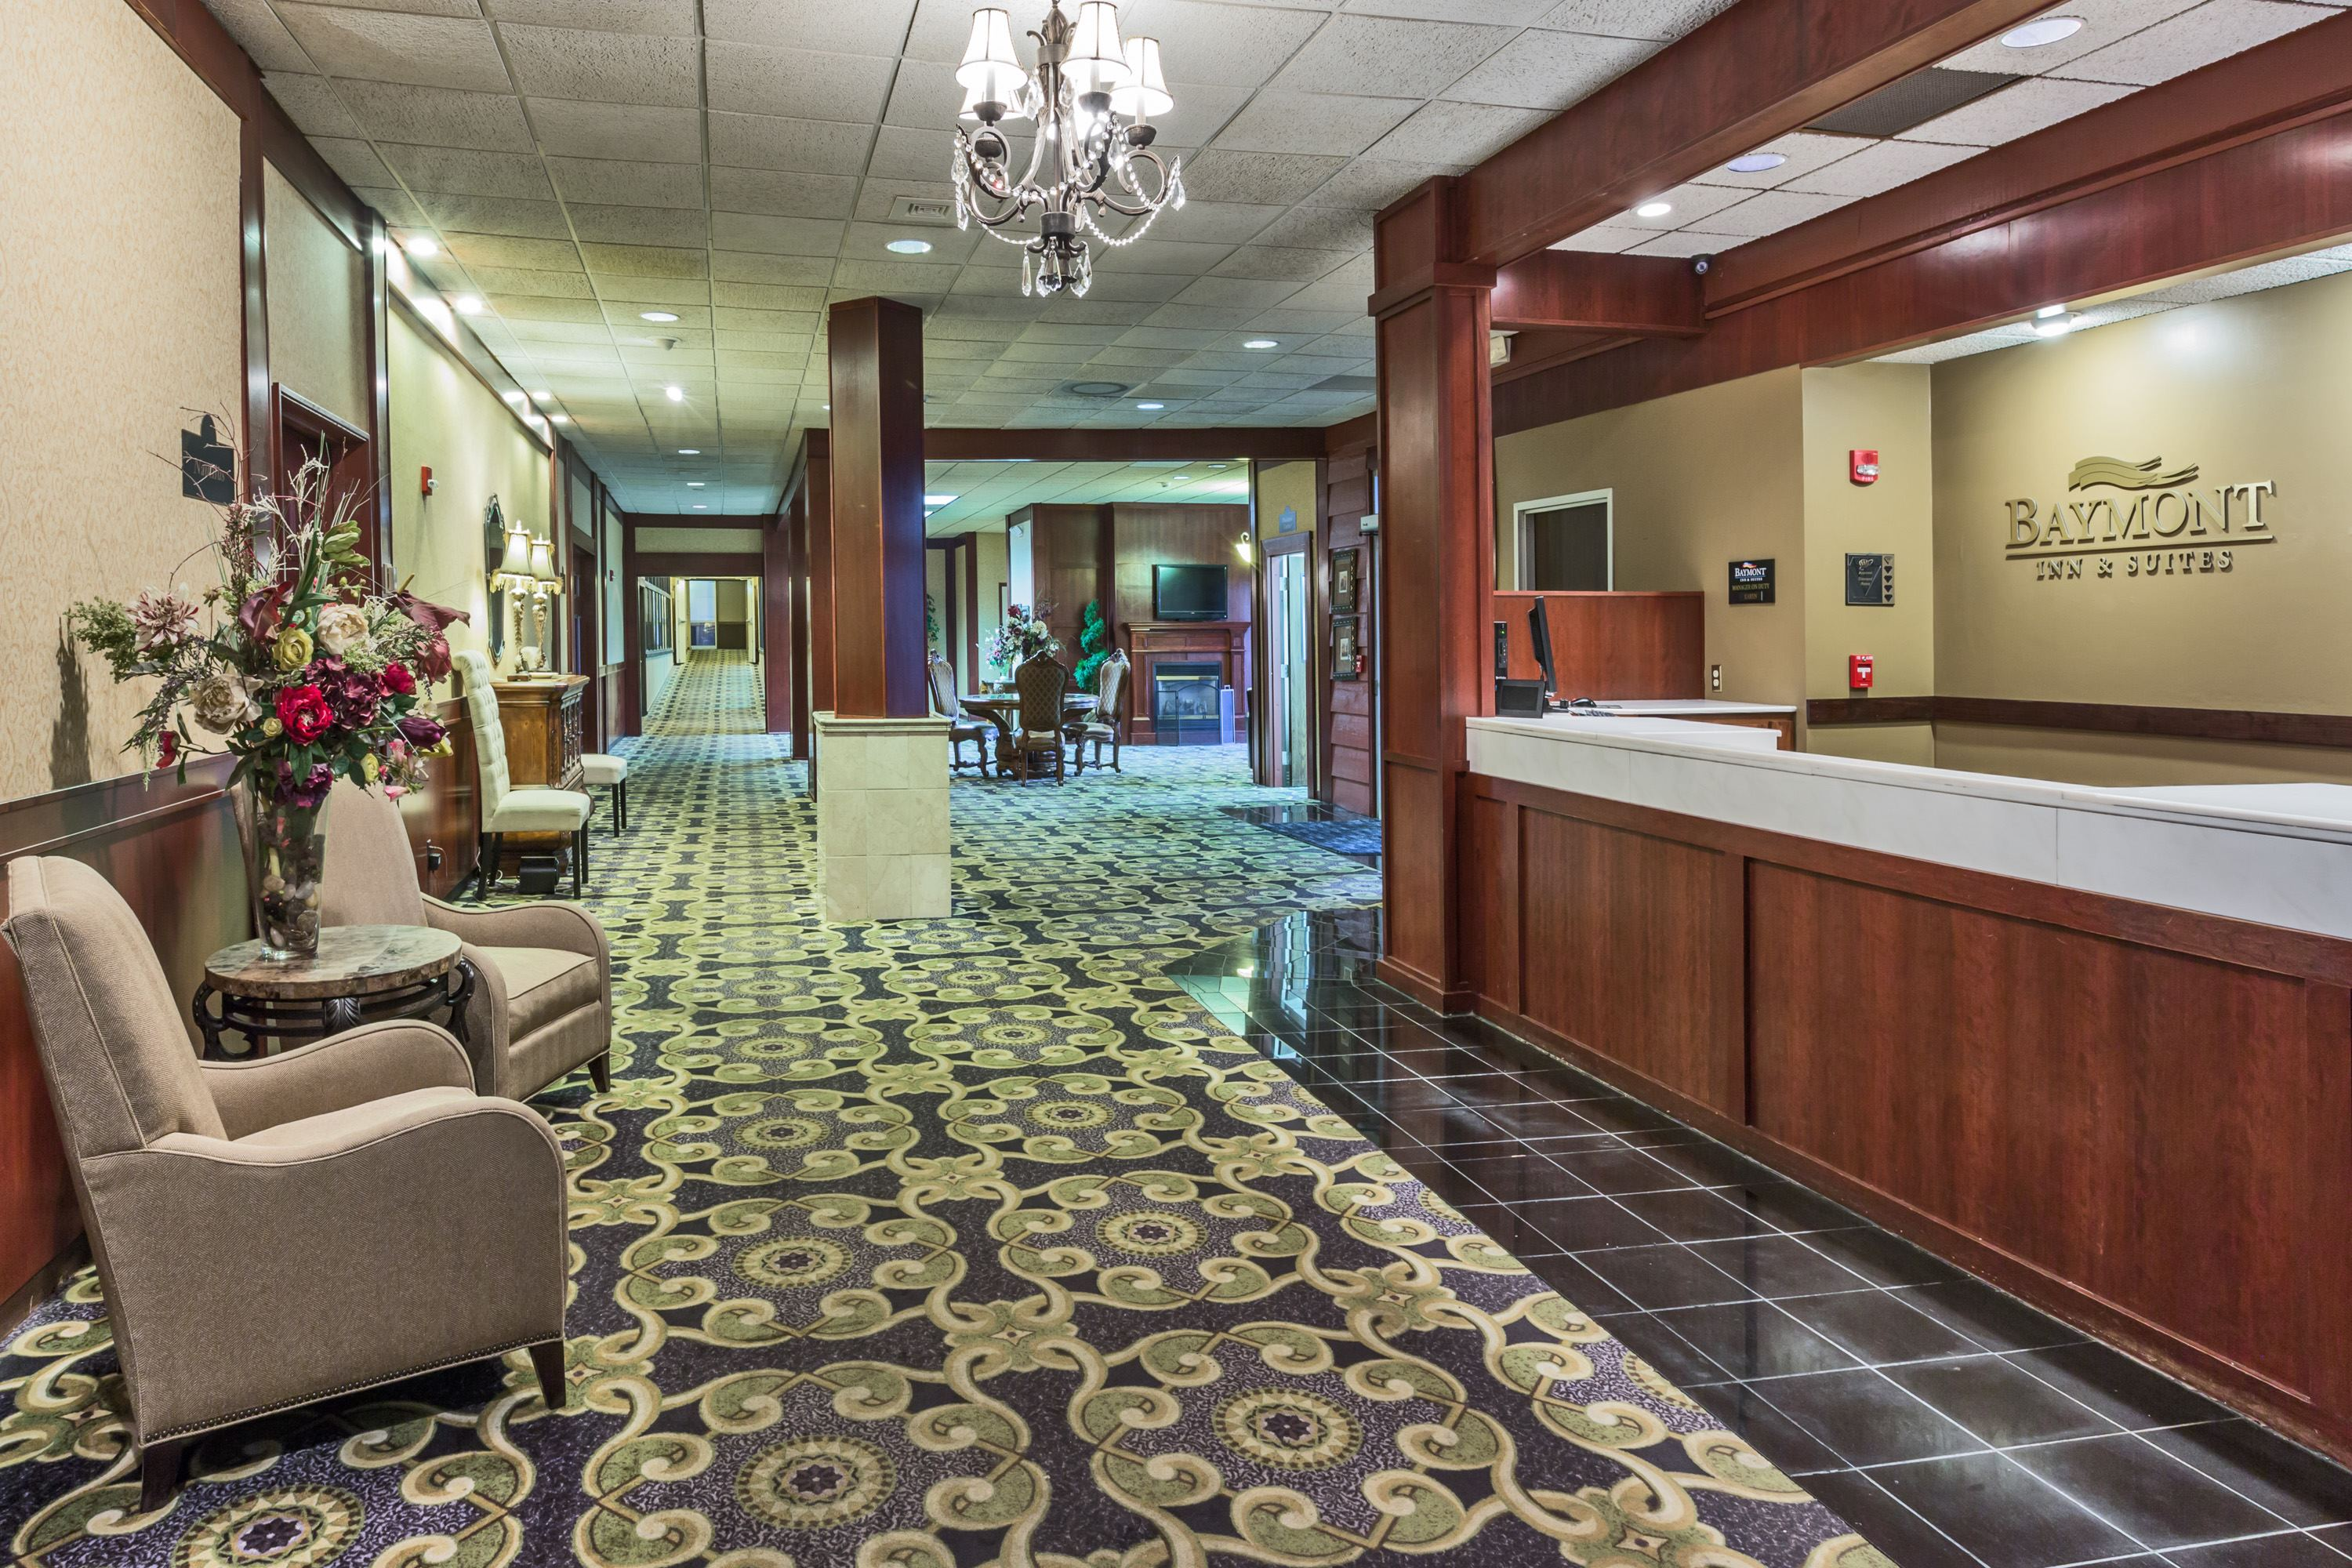 Baymont Inn and Suites Mandan - 3